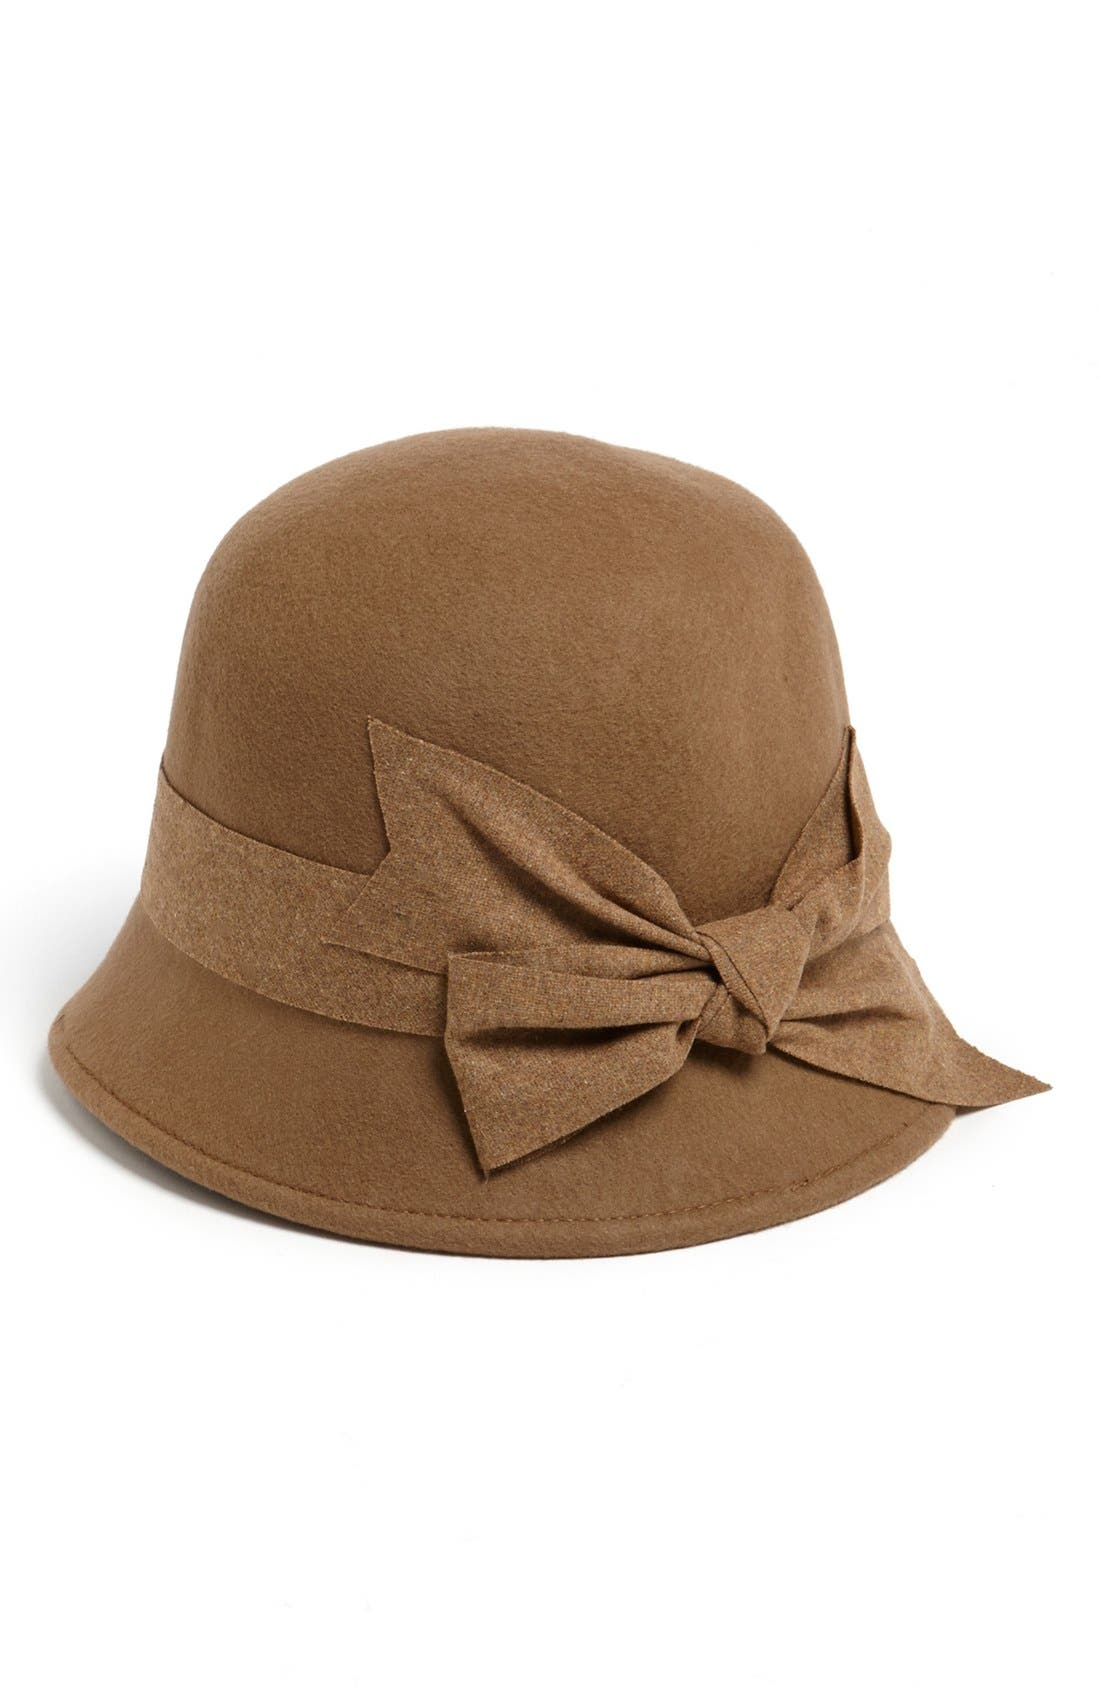 Alternate Image 1 Selected - Nordstrom Large Bow Wool Felt Cloche